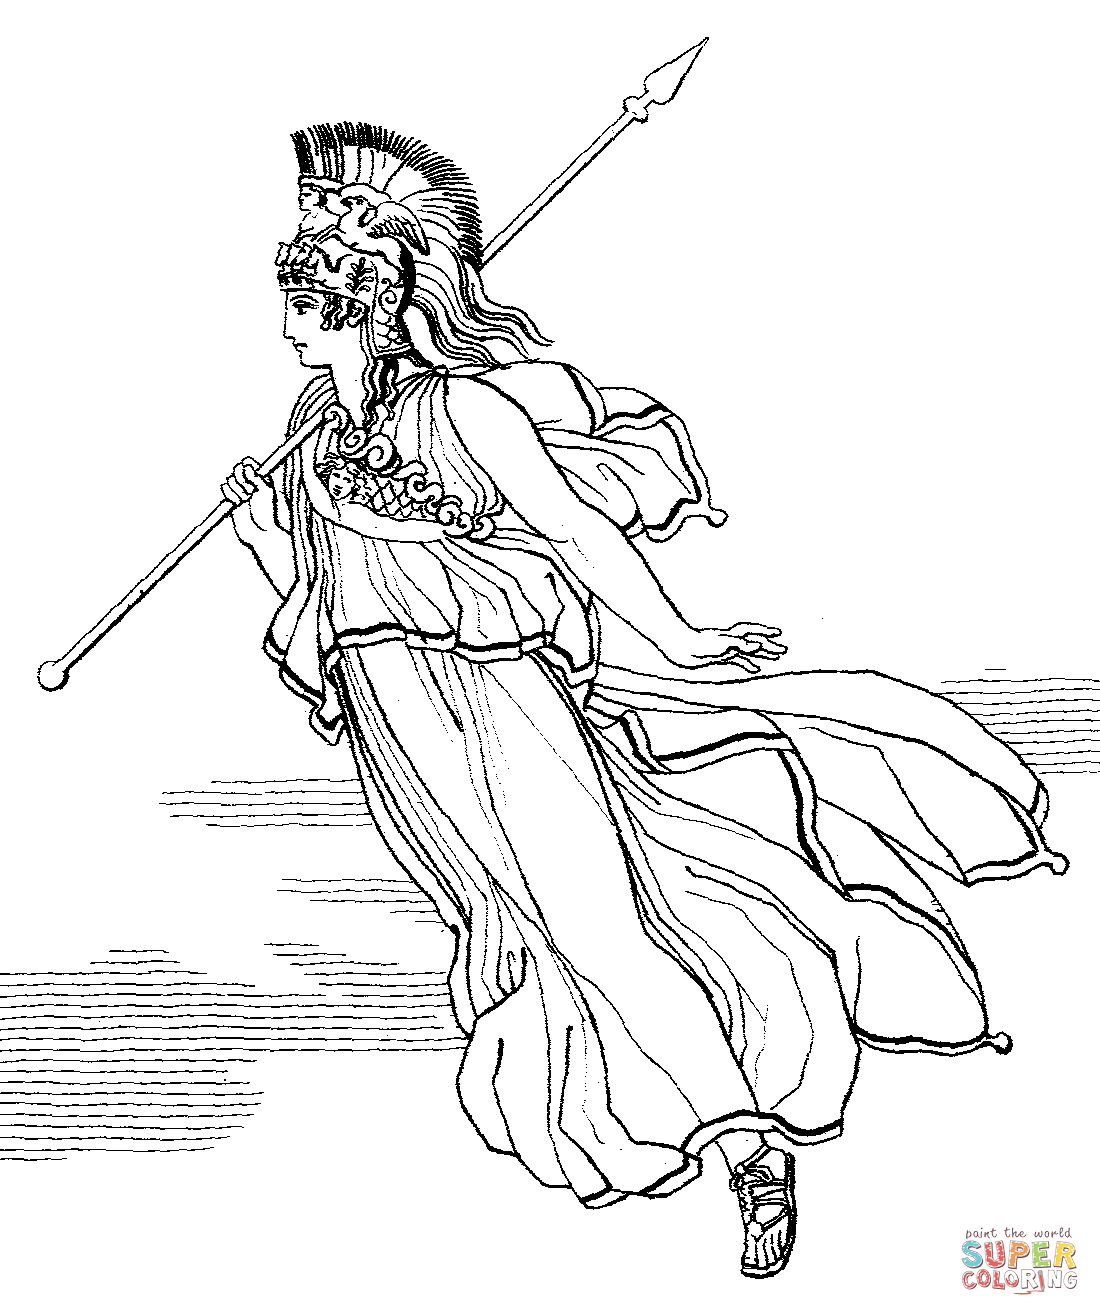 Gem Tlich Greek Mythology Coloring Pages Ideen Malvorlagen Von